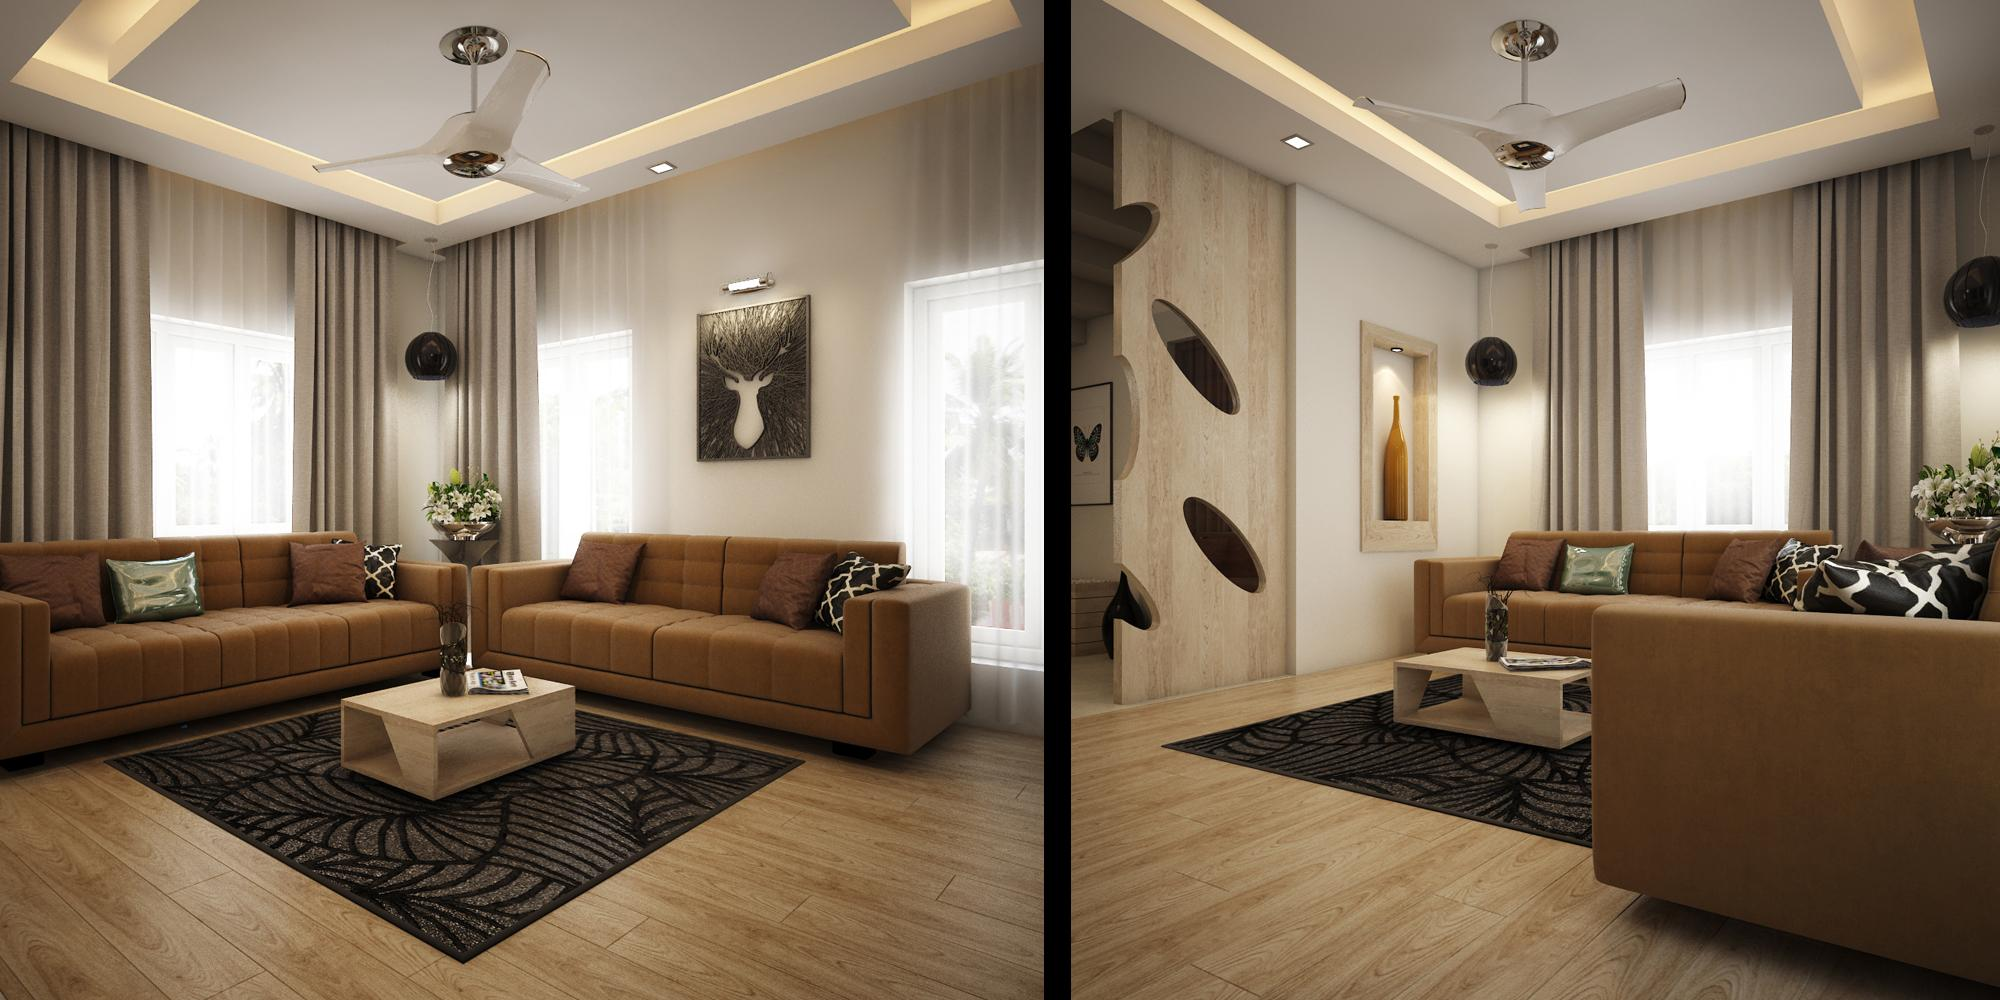 advantages & disadvantages of wooden flooring- Monnaie architects and interiors